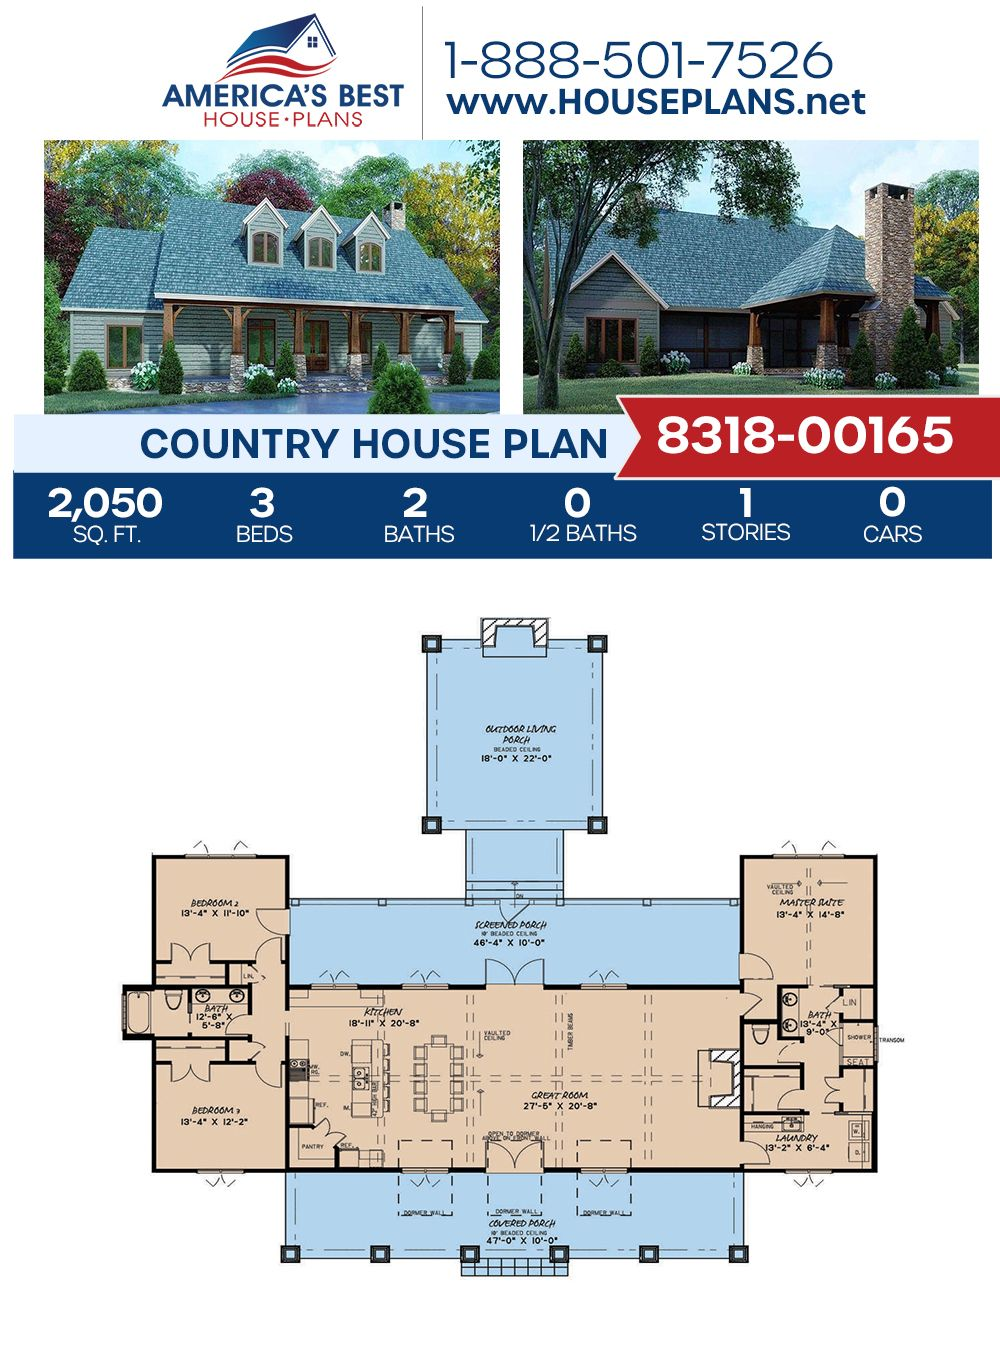 Get to know this 2,050 sq. ft. Country home design. Plan 8318-00165 features 3 bedrooms, 2 bathrooms, split bedrooms, a kitchen island, an open floor plan, and a screened-in porch. #countryhome #countryhouse #openfloorplan #architecture #houseplans #housedesign #homedesign #homedesigns #architecturalplans #newconstruction #floorplans #dreamhome #dreamhouseplans #abhouseplans #besthouseplans #newhome #newhouse #homesweethome #buildingahome #buildahome #residentialplans #residentialhome